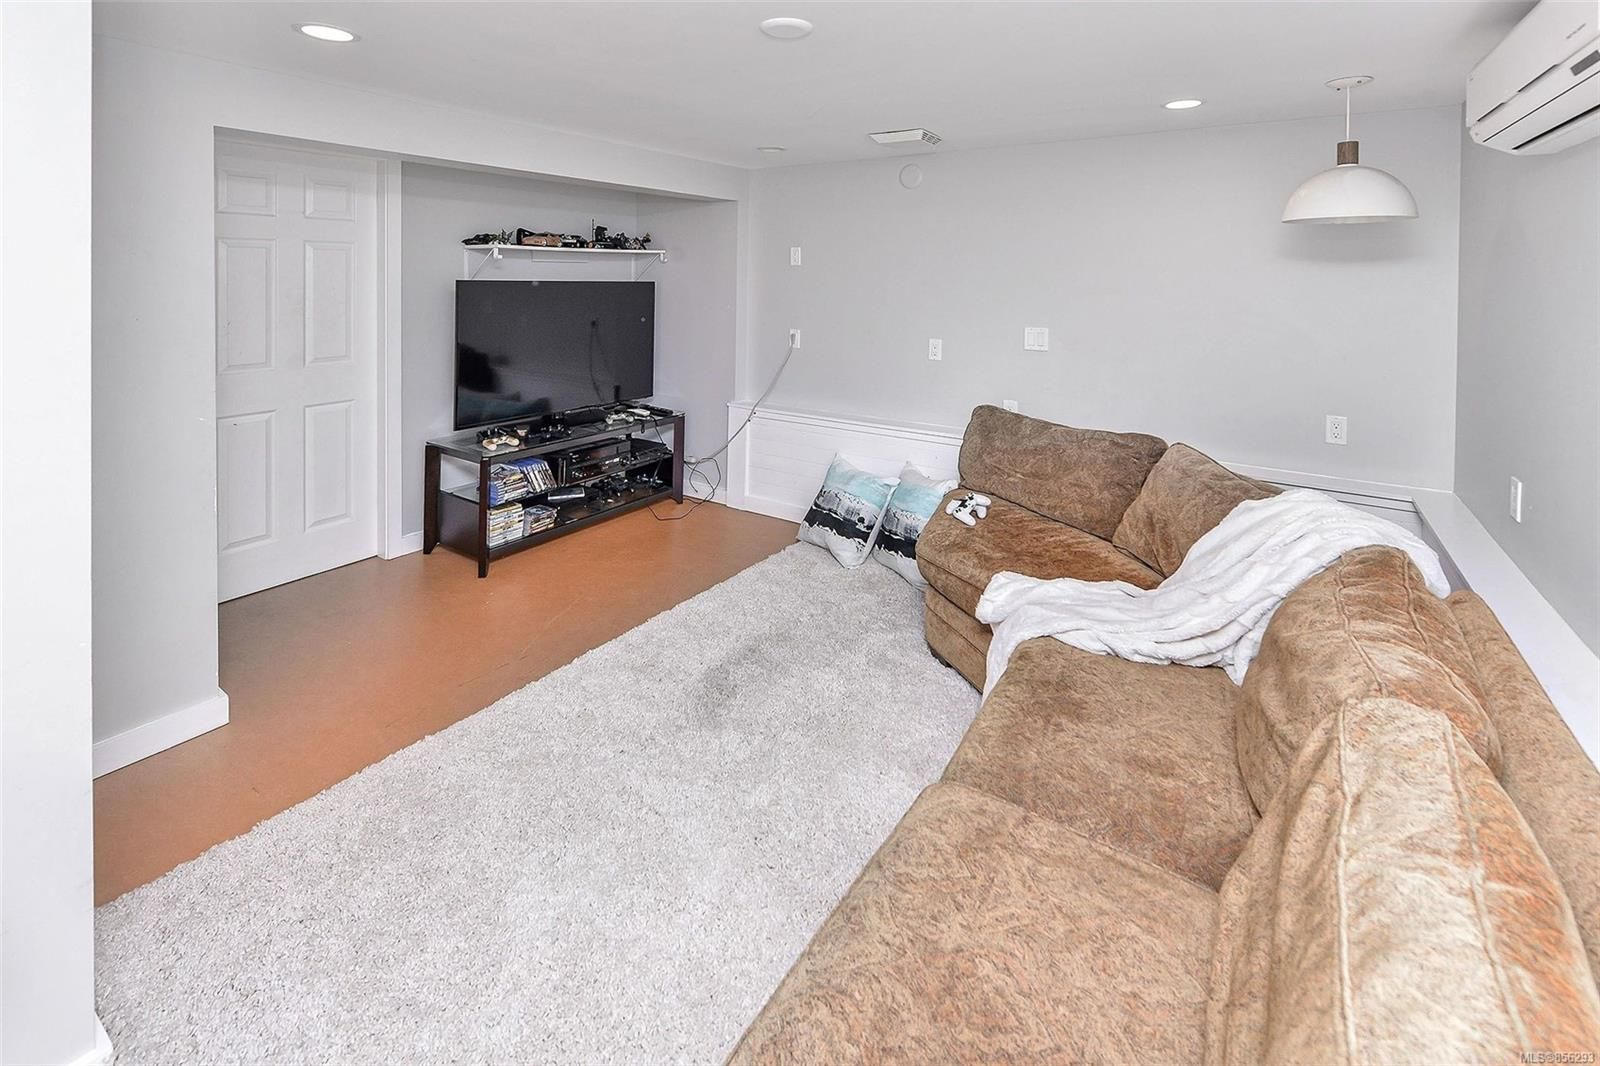 Photo 25: Photos: 1753 Armstrong Ave in : OB North Oak Bay House for sale (Oak Bay)  : MLS®# 856293